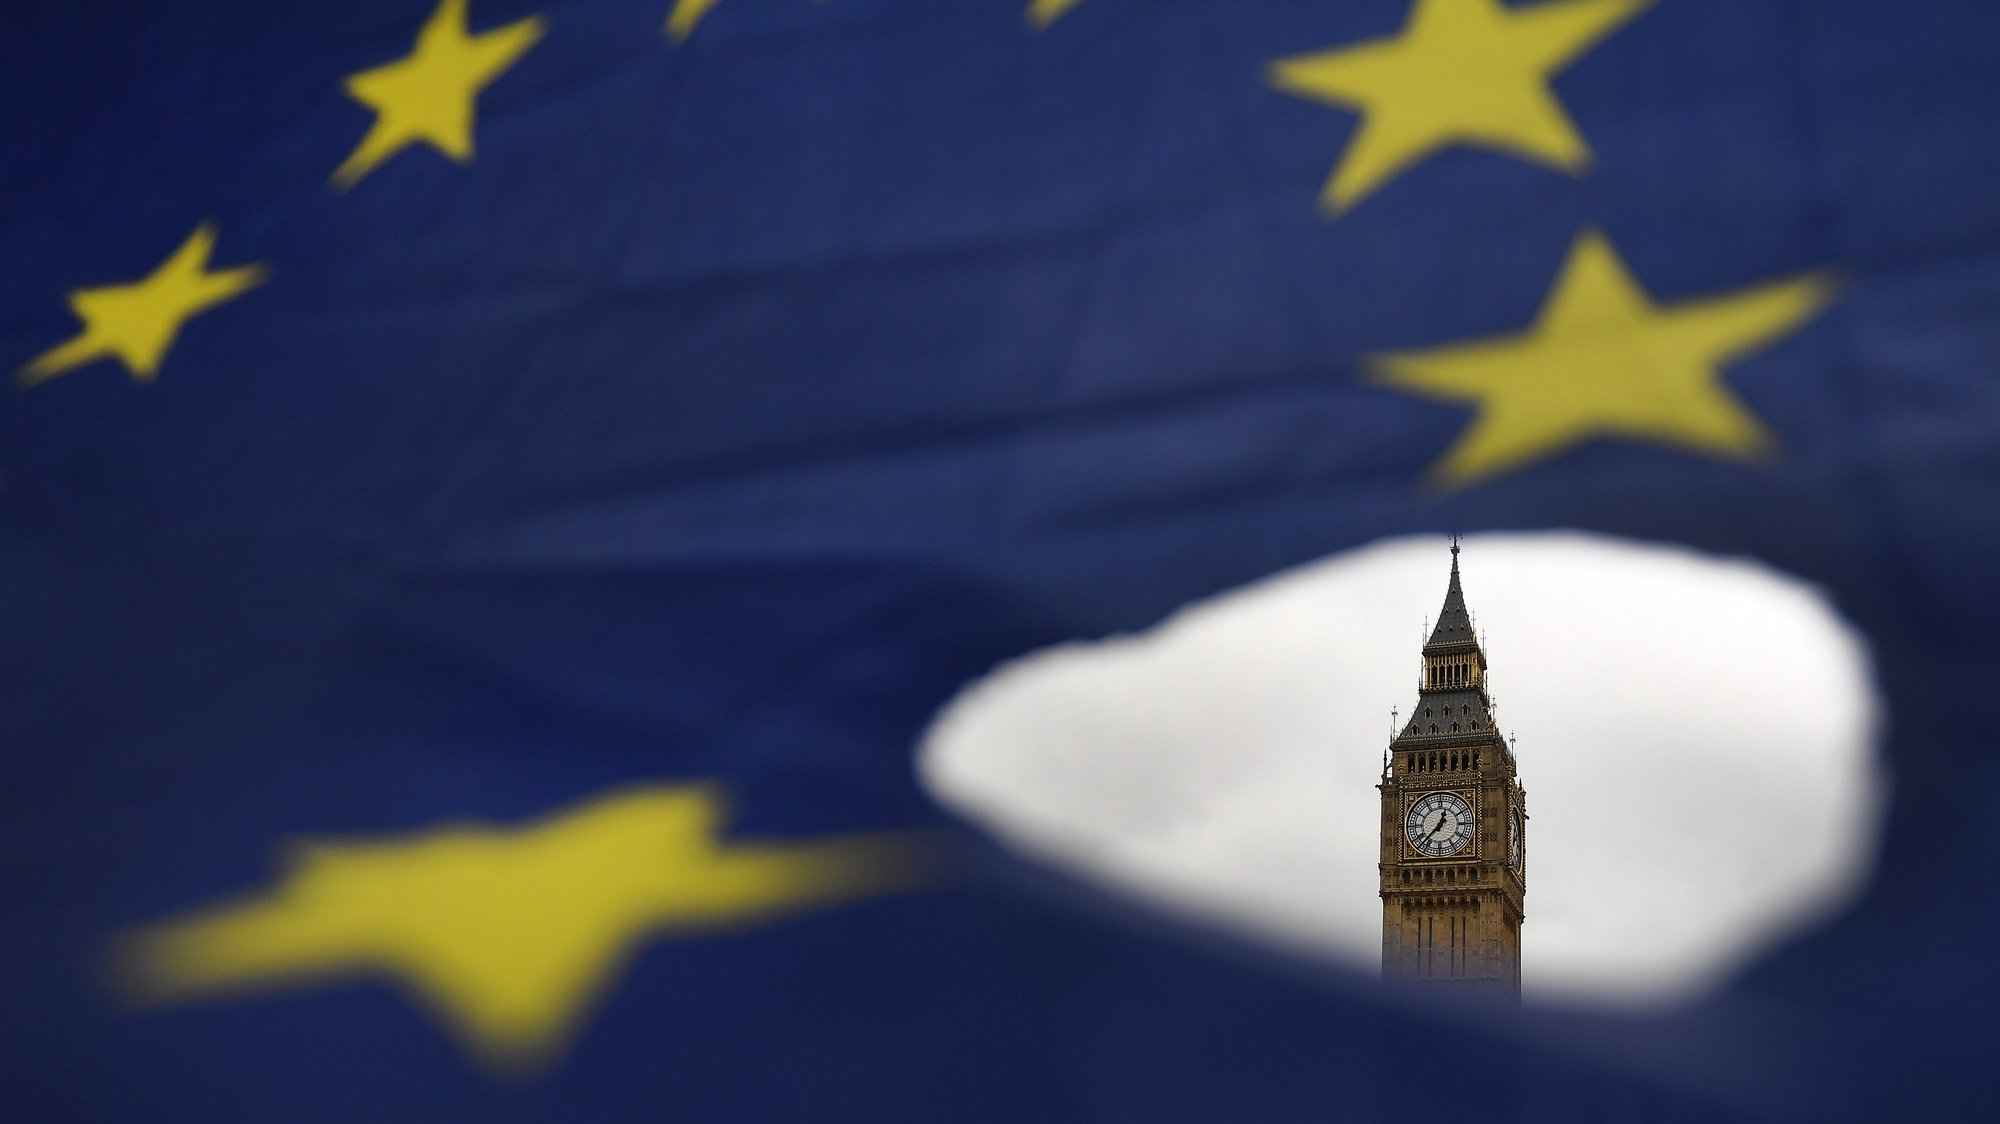 epa08429204 A European Union flag during a demonstration against Brexit outside the Houses of Parliament in London, Britain, 29 March 2017 (re-issued 18 May 2020). As prominent in both sky and sea, the color blue is often associated with open spaces, freedom, depth and wisdom. In psychology blue is viewed as a non-threatening color and it is believed to have positive and calming effects on body and mind. Often linked with intellect, confidence and reliability, it is known in corporate America as a power color.  EPA/ANDY RAIN ATTENTION: This Image is part of a PHOTO SET *** Local Caption *** 53417477